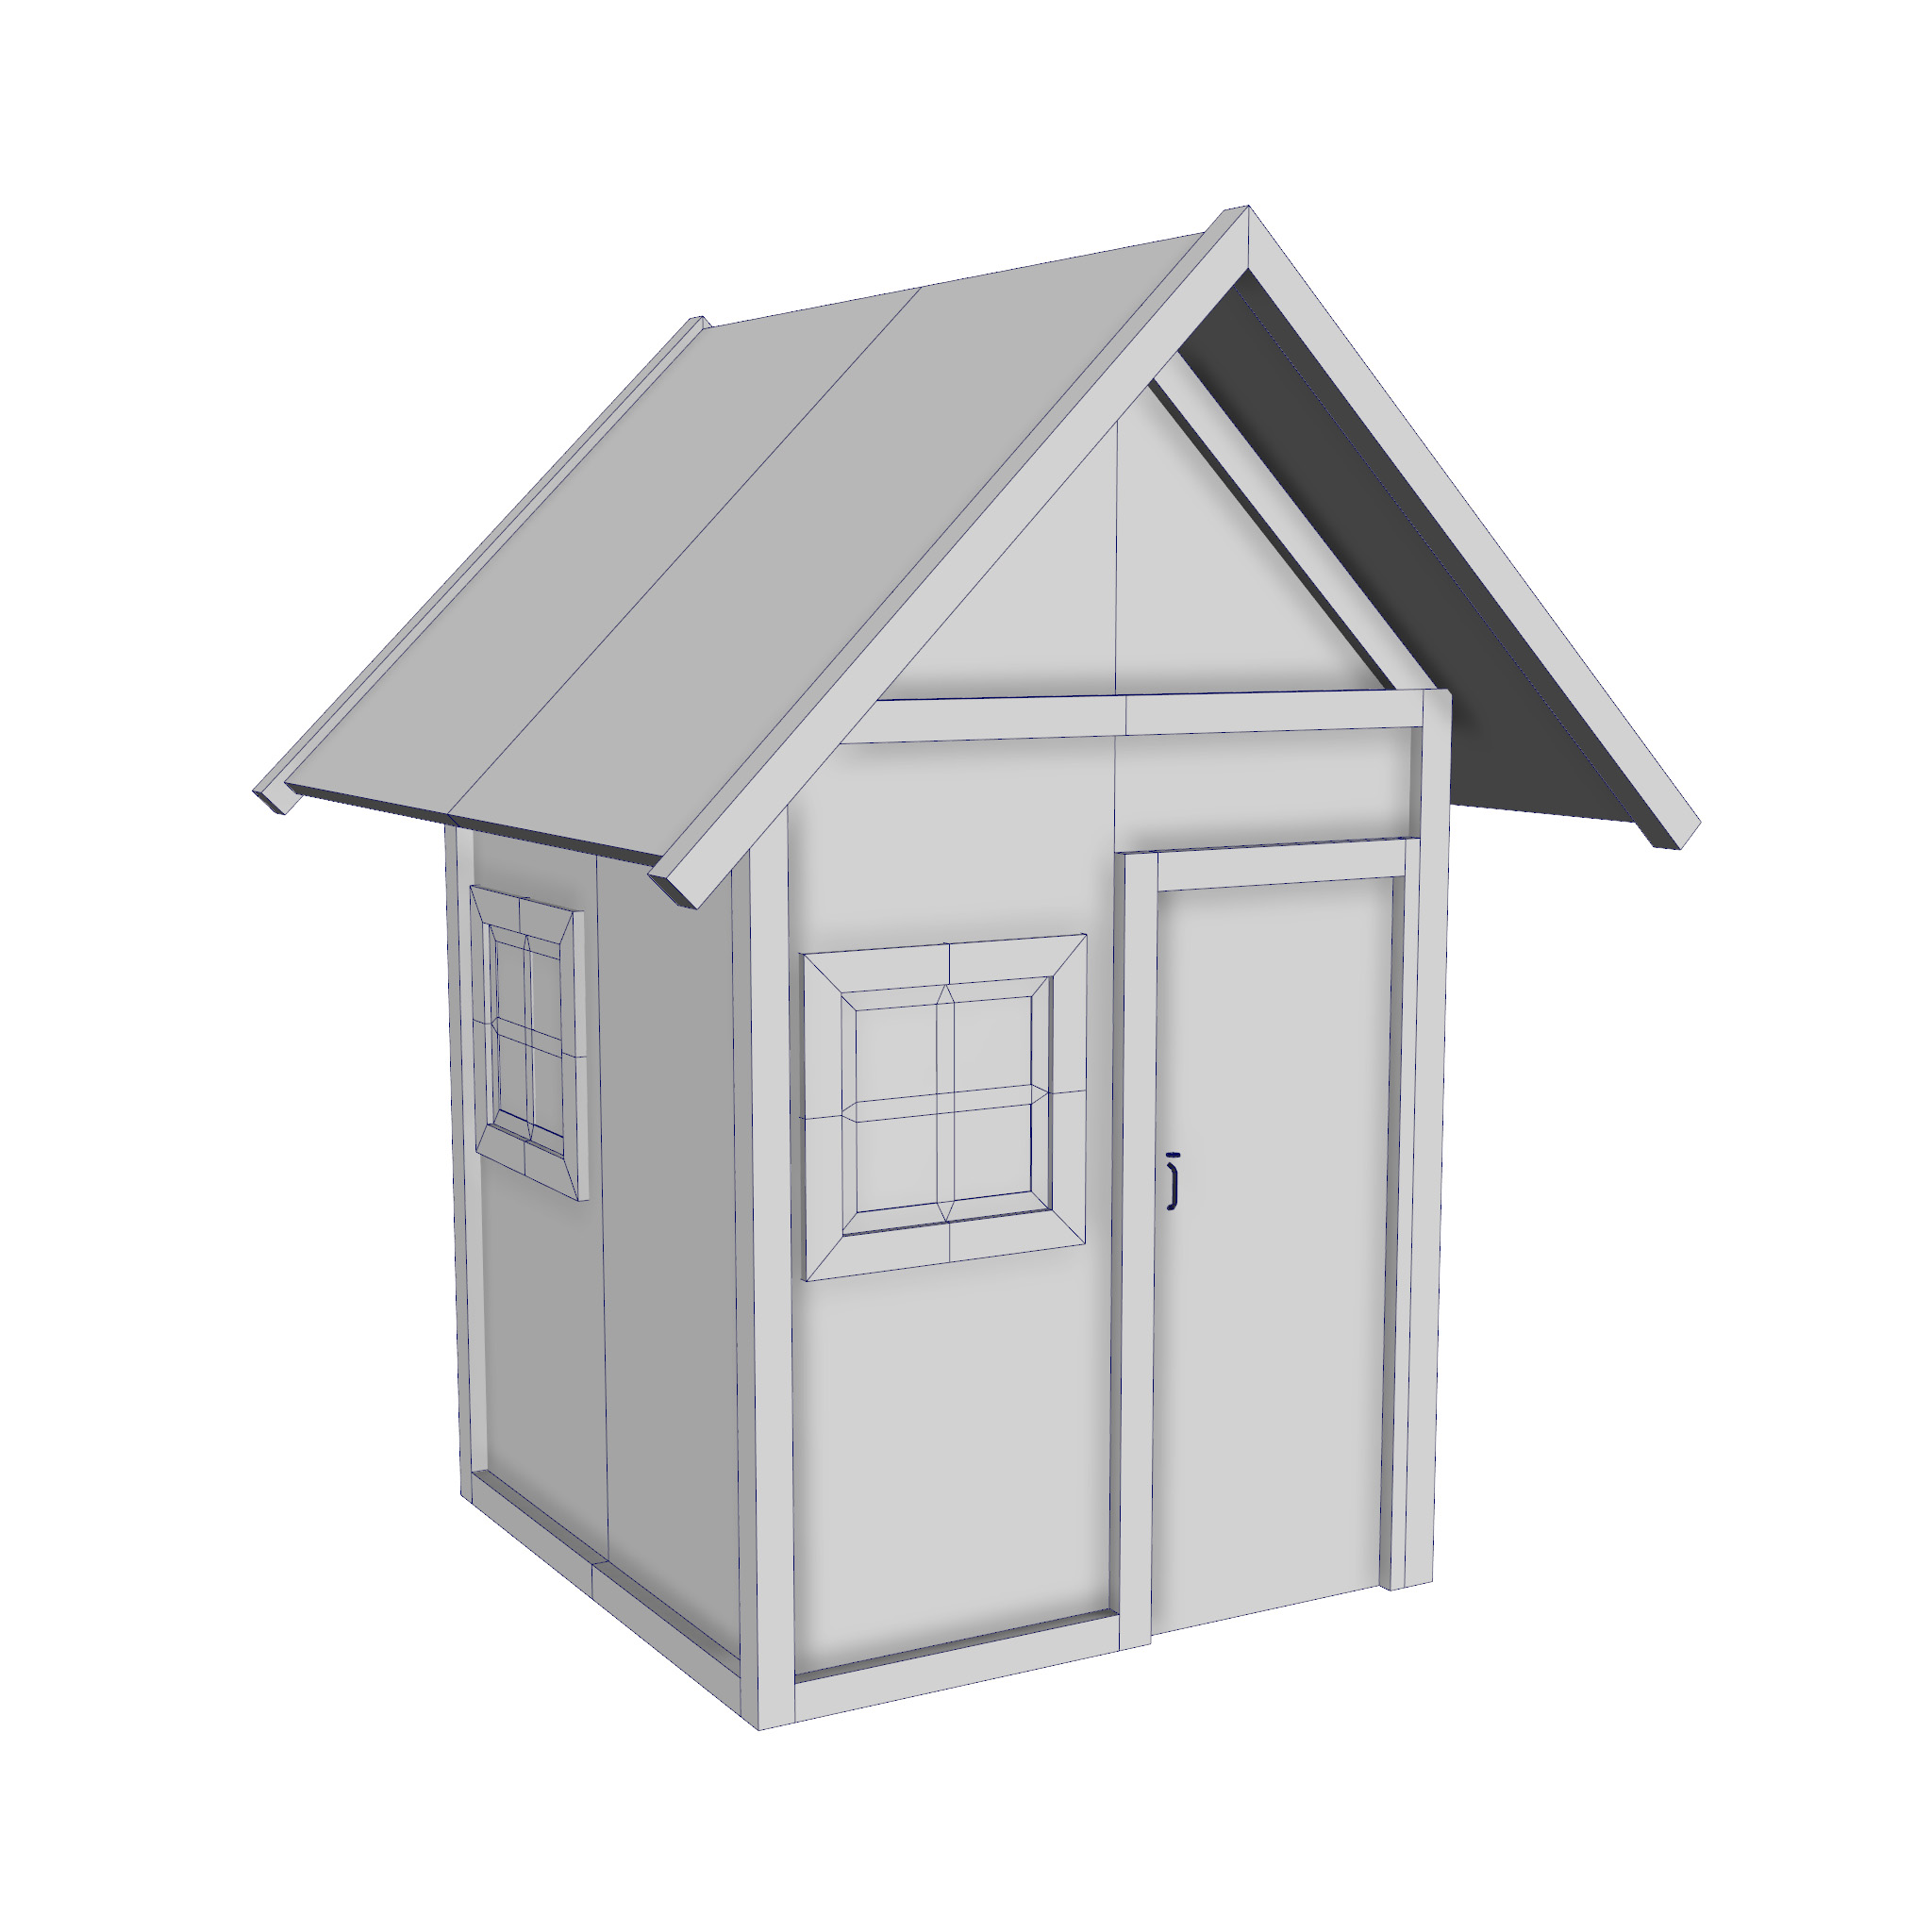 modular wood house set 3d model fbx ma mb 271452